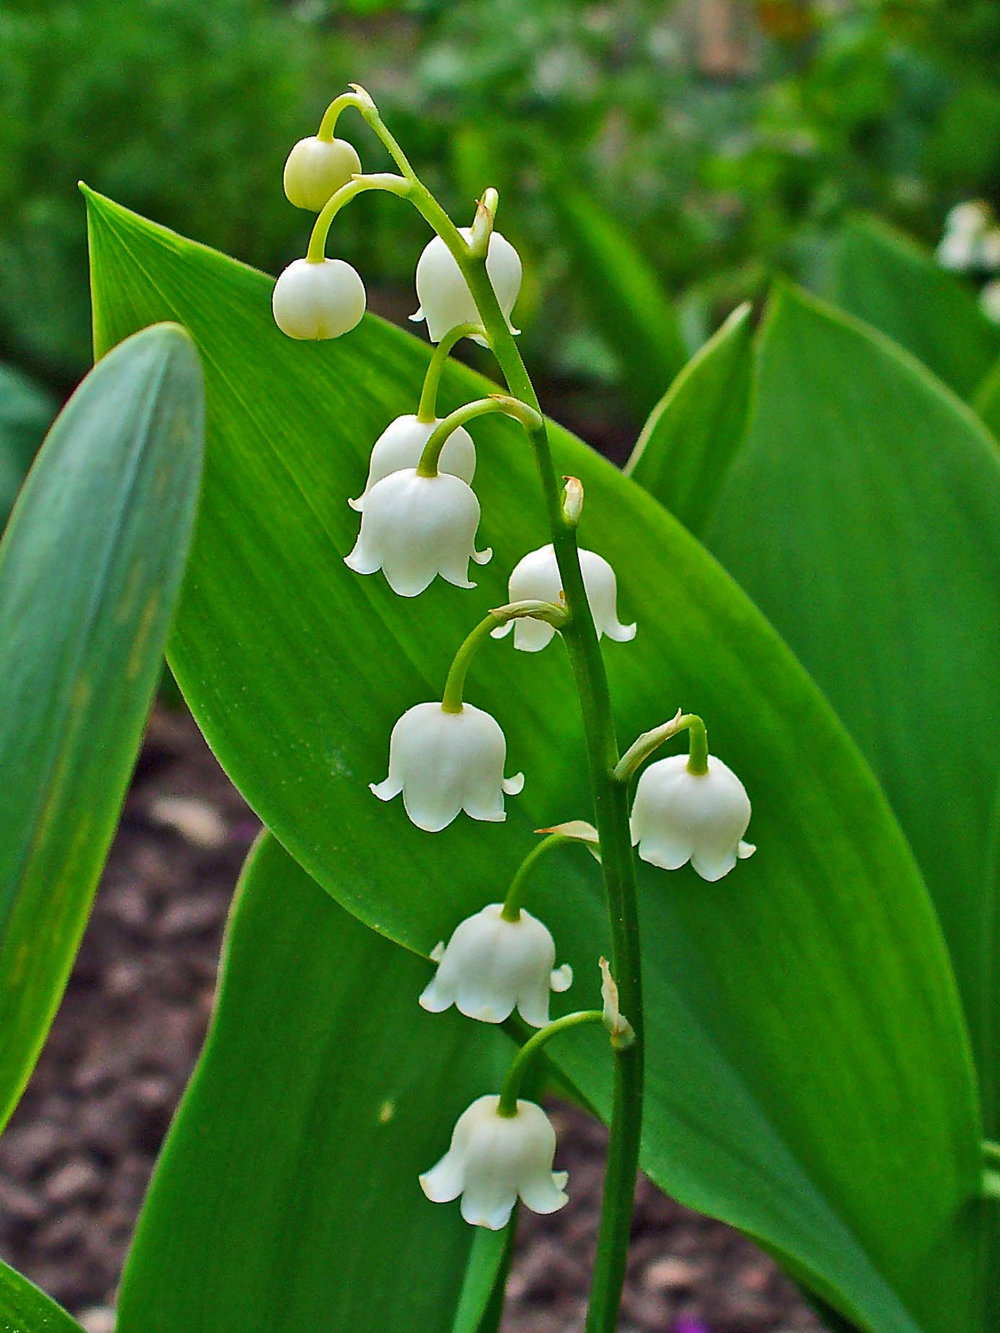 Lily of the valley,  C. majalis  -  H. Zell on Wikipedia